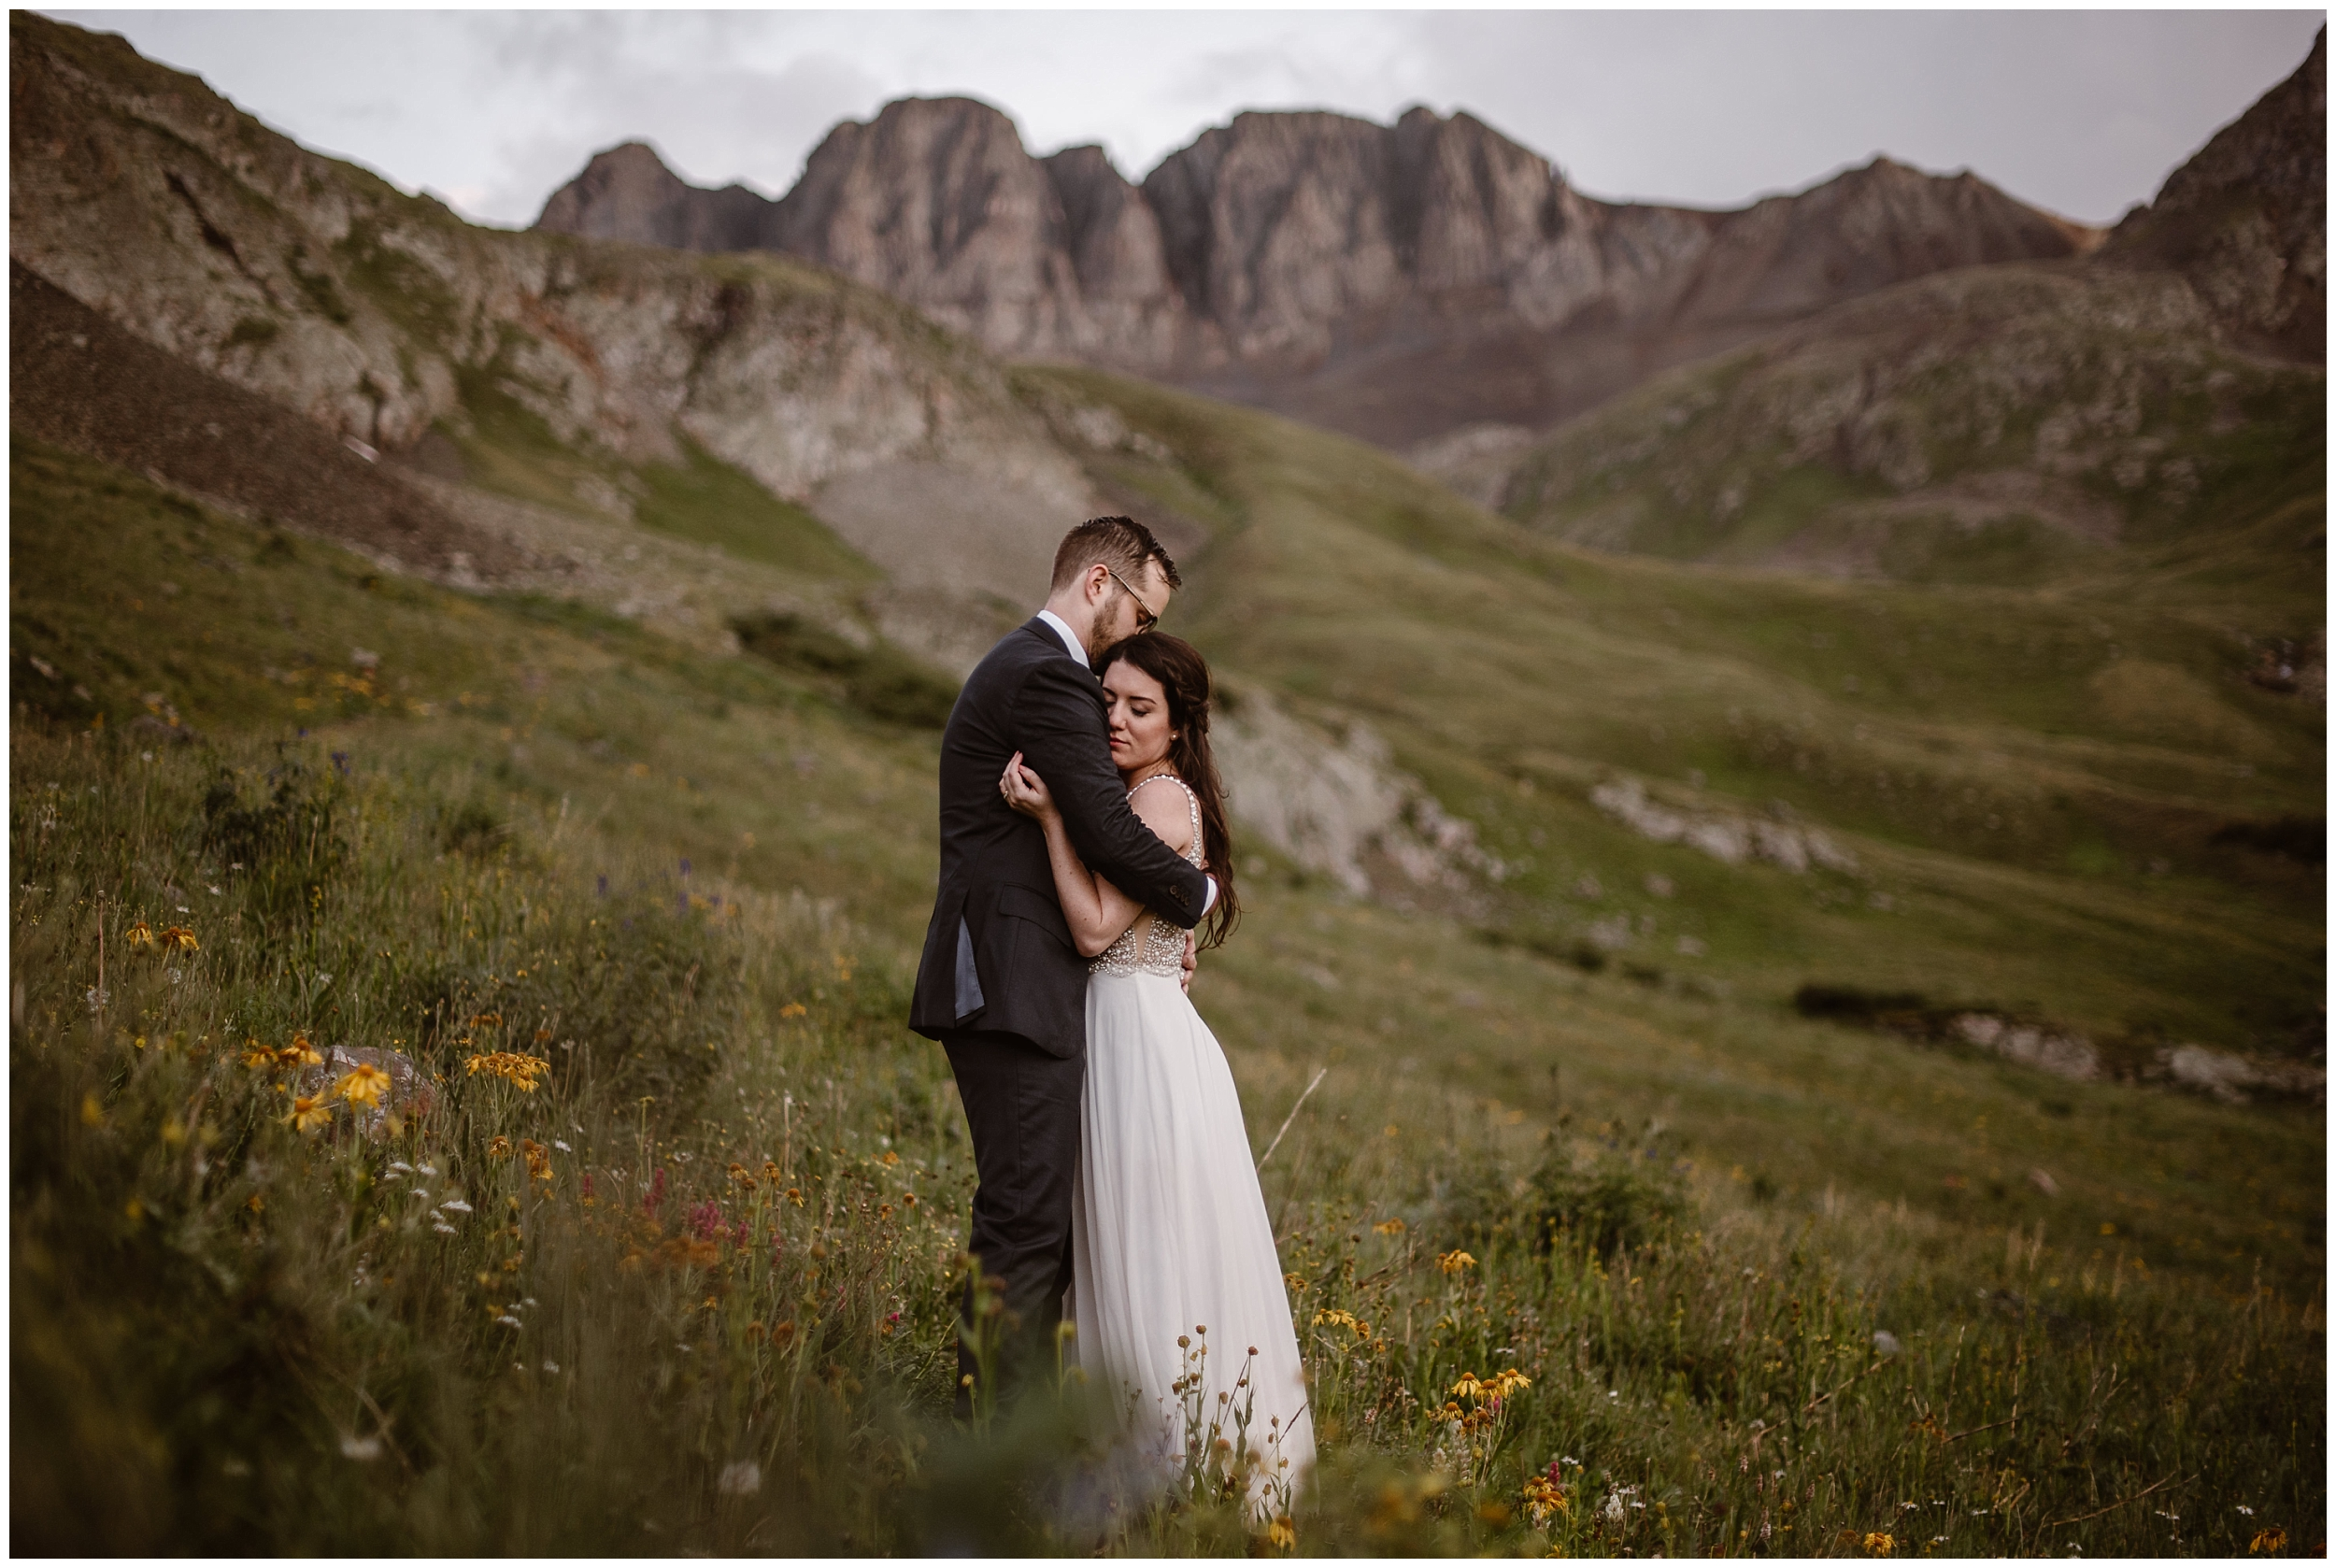 The bride and groom meaningfully embrace in a meadow in a mountain basin. All around them wildflowers in red and yellow bloom by their feet in these elopement pictures captured by adventure photographers Adventure Instead. Katie and Logan's small simple wedding was held in Ouray, Colorado.